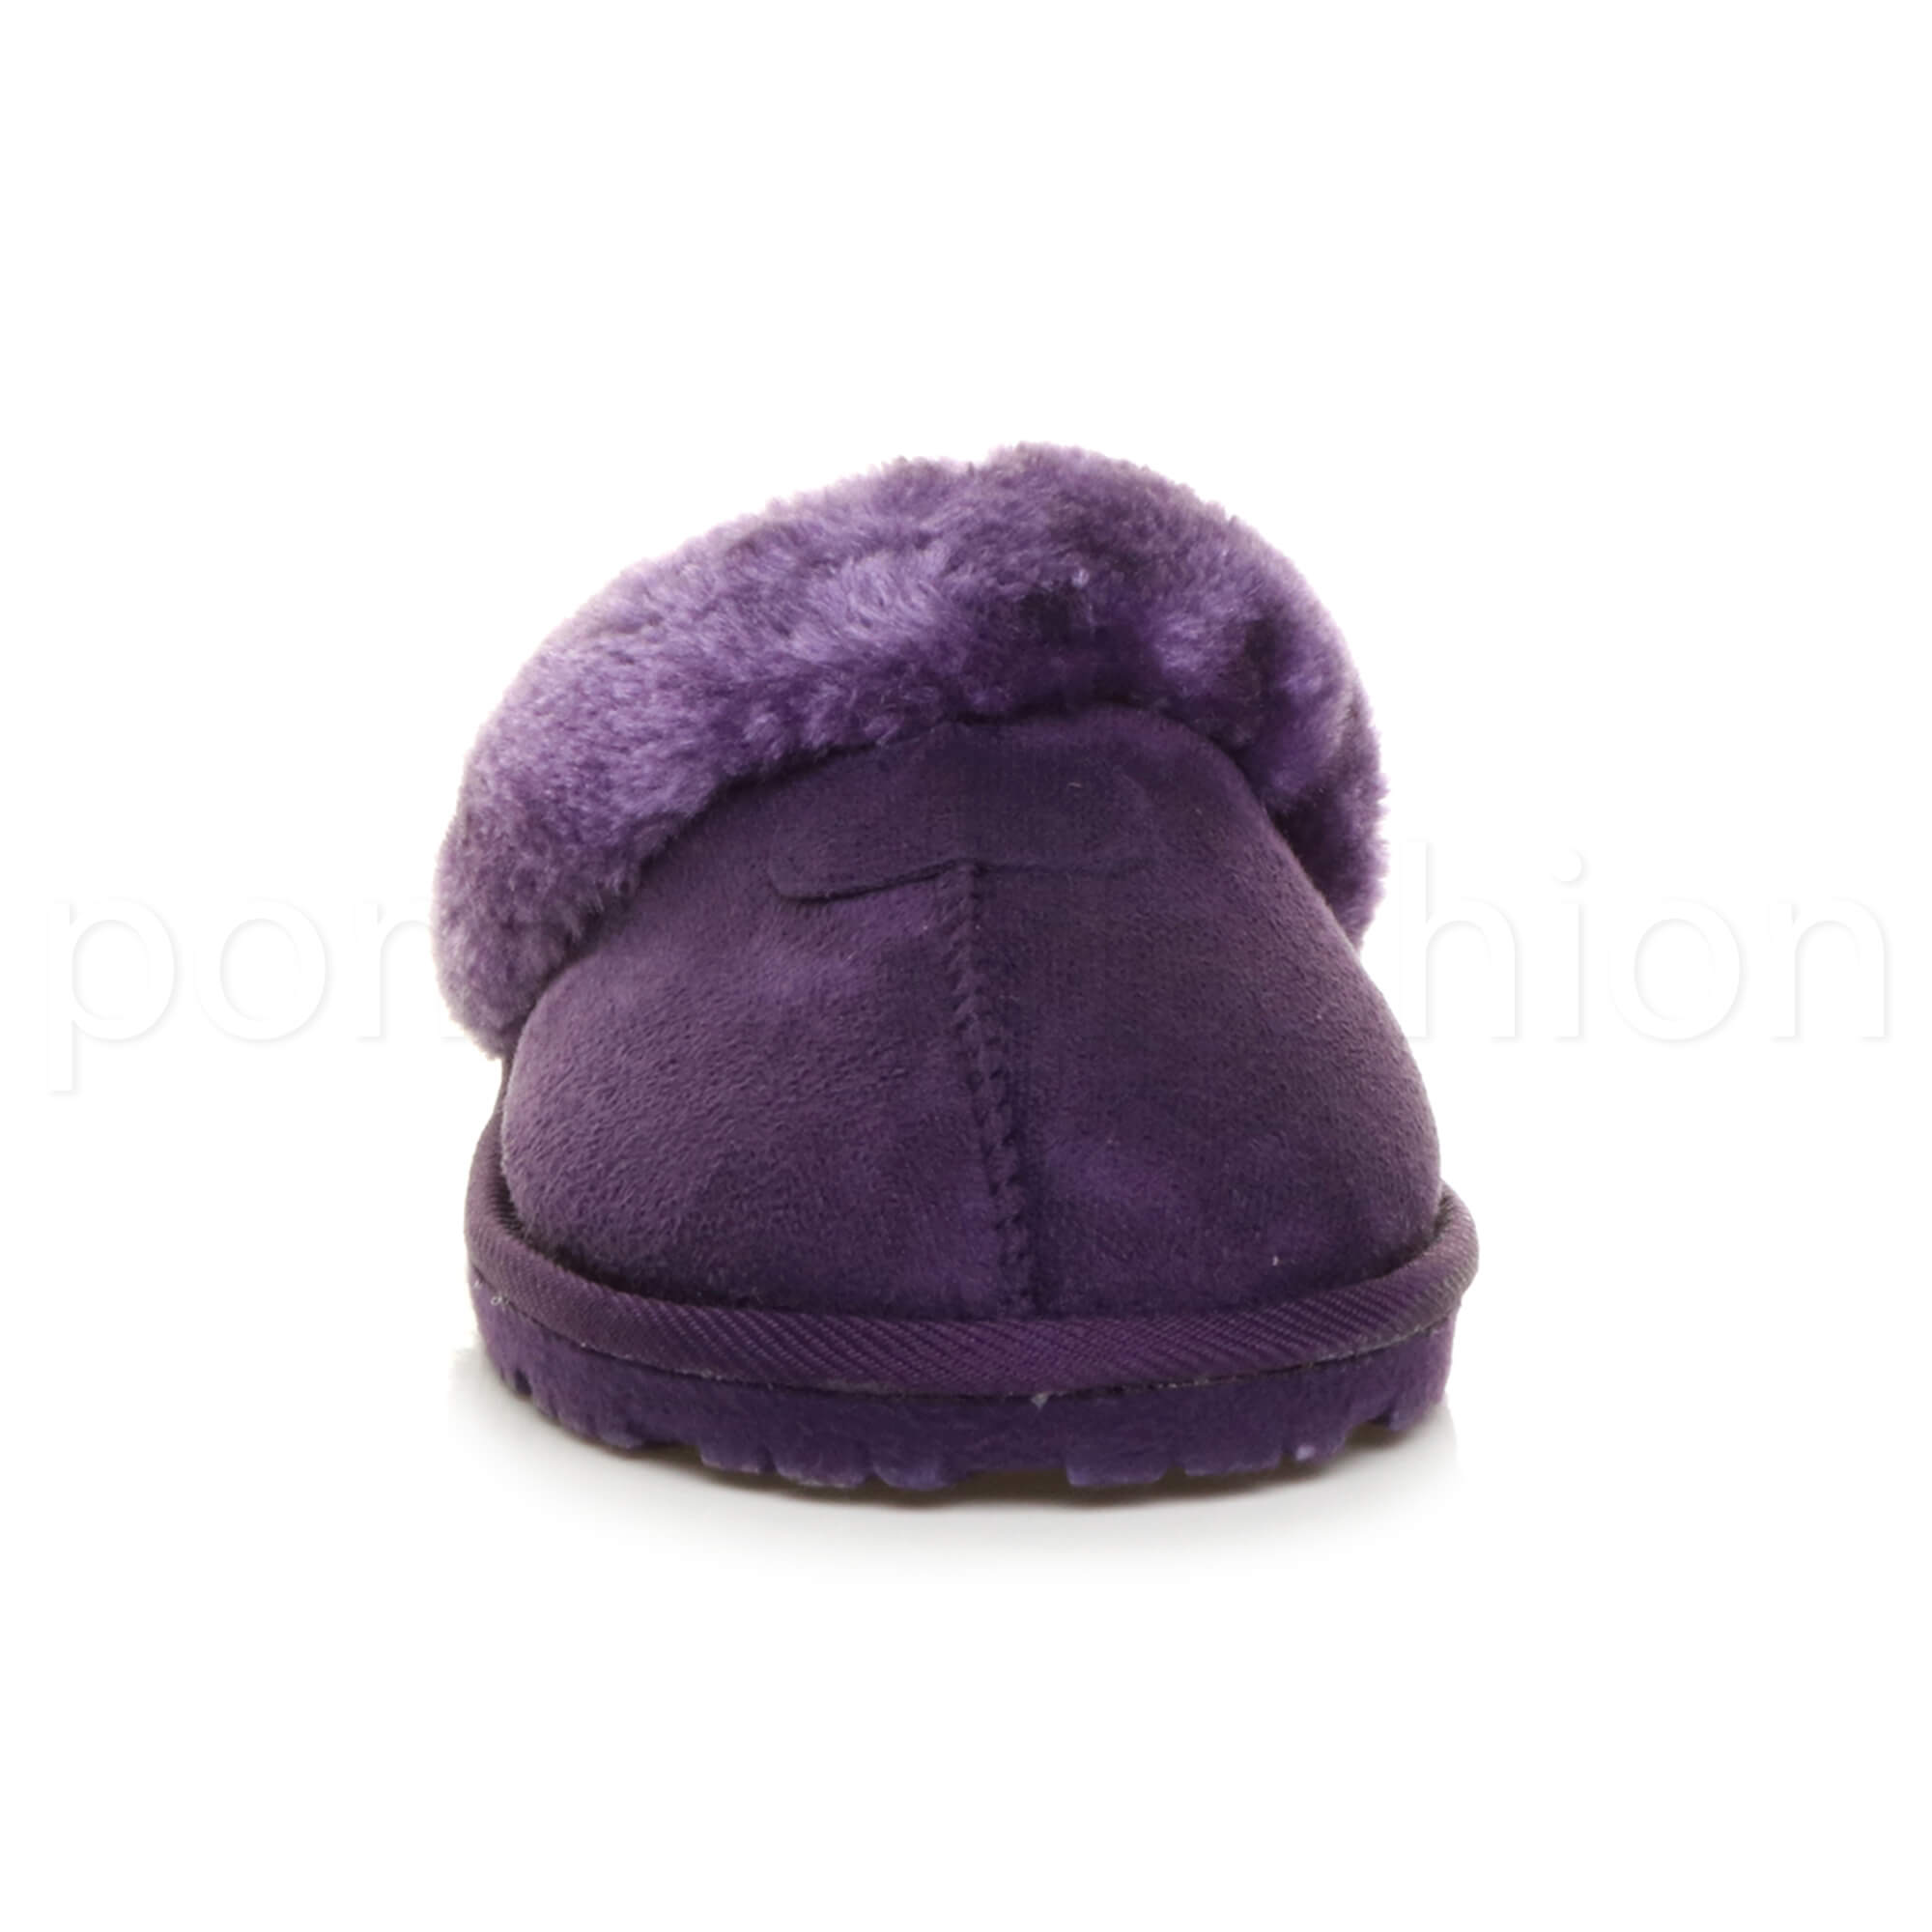 WOMENS-LADIES-FLAT-FUR-LINED-COMFORTABLE-WINTER-MULES-SLIPPERS-HOUSE-SHOES-SIZE thumbnail 91